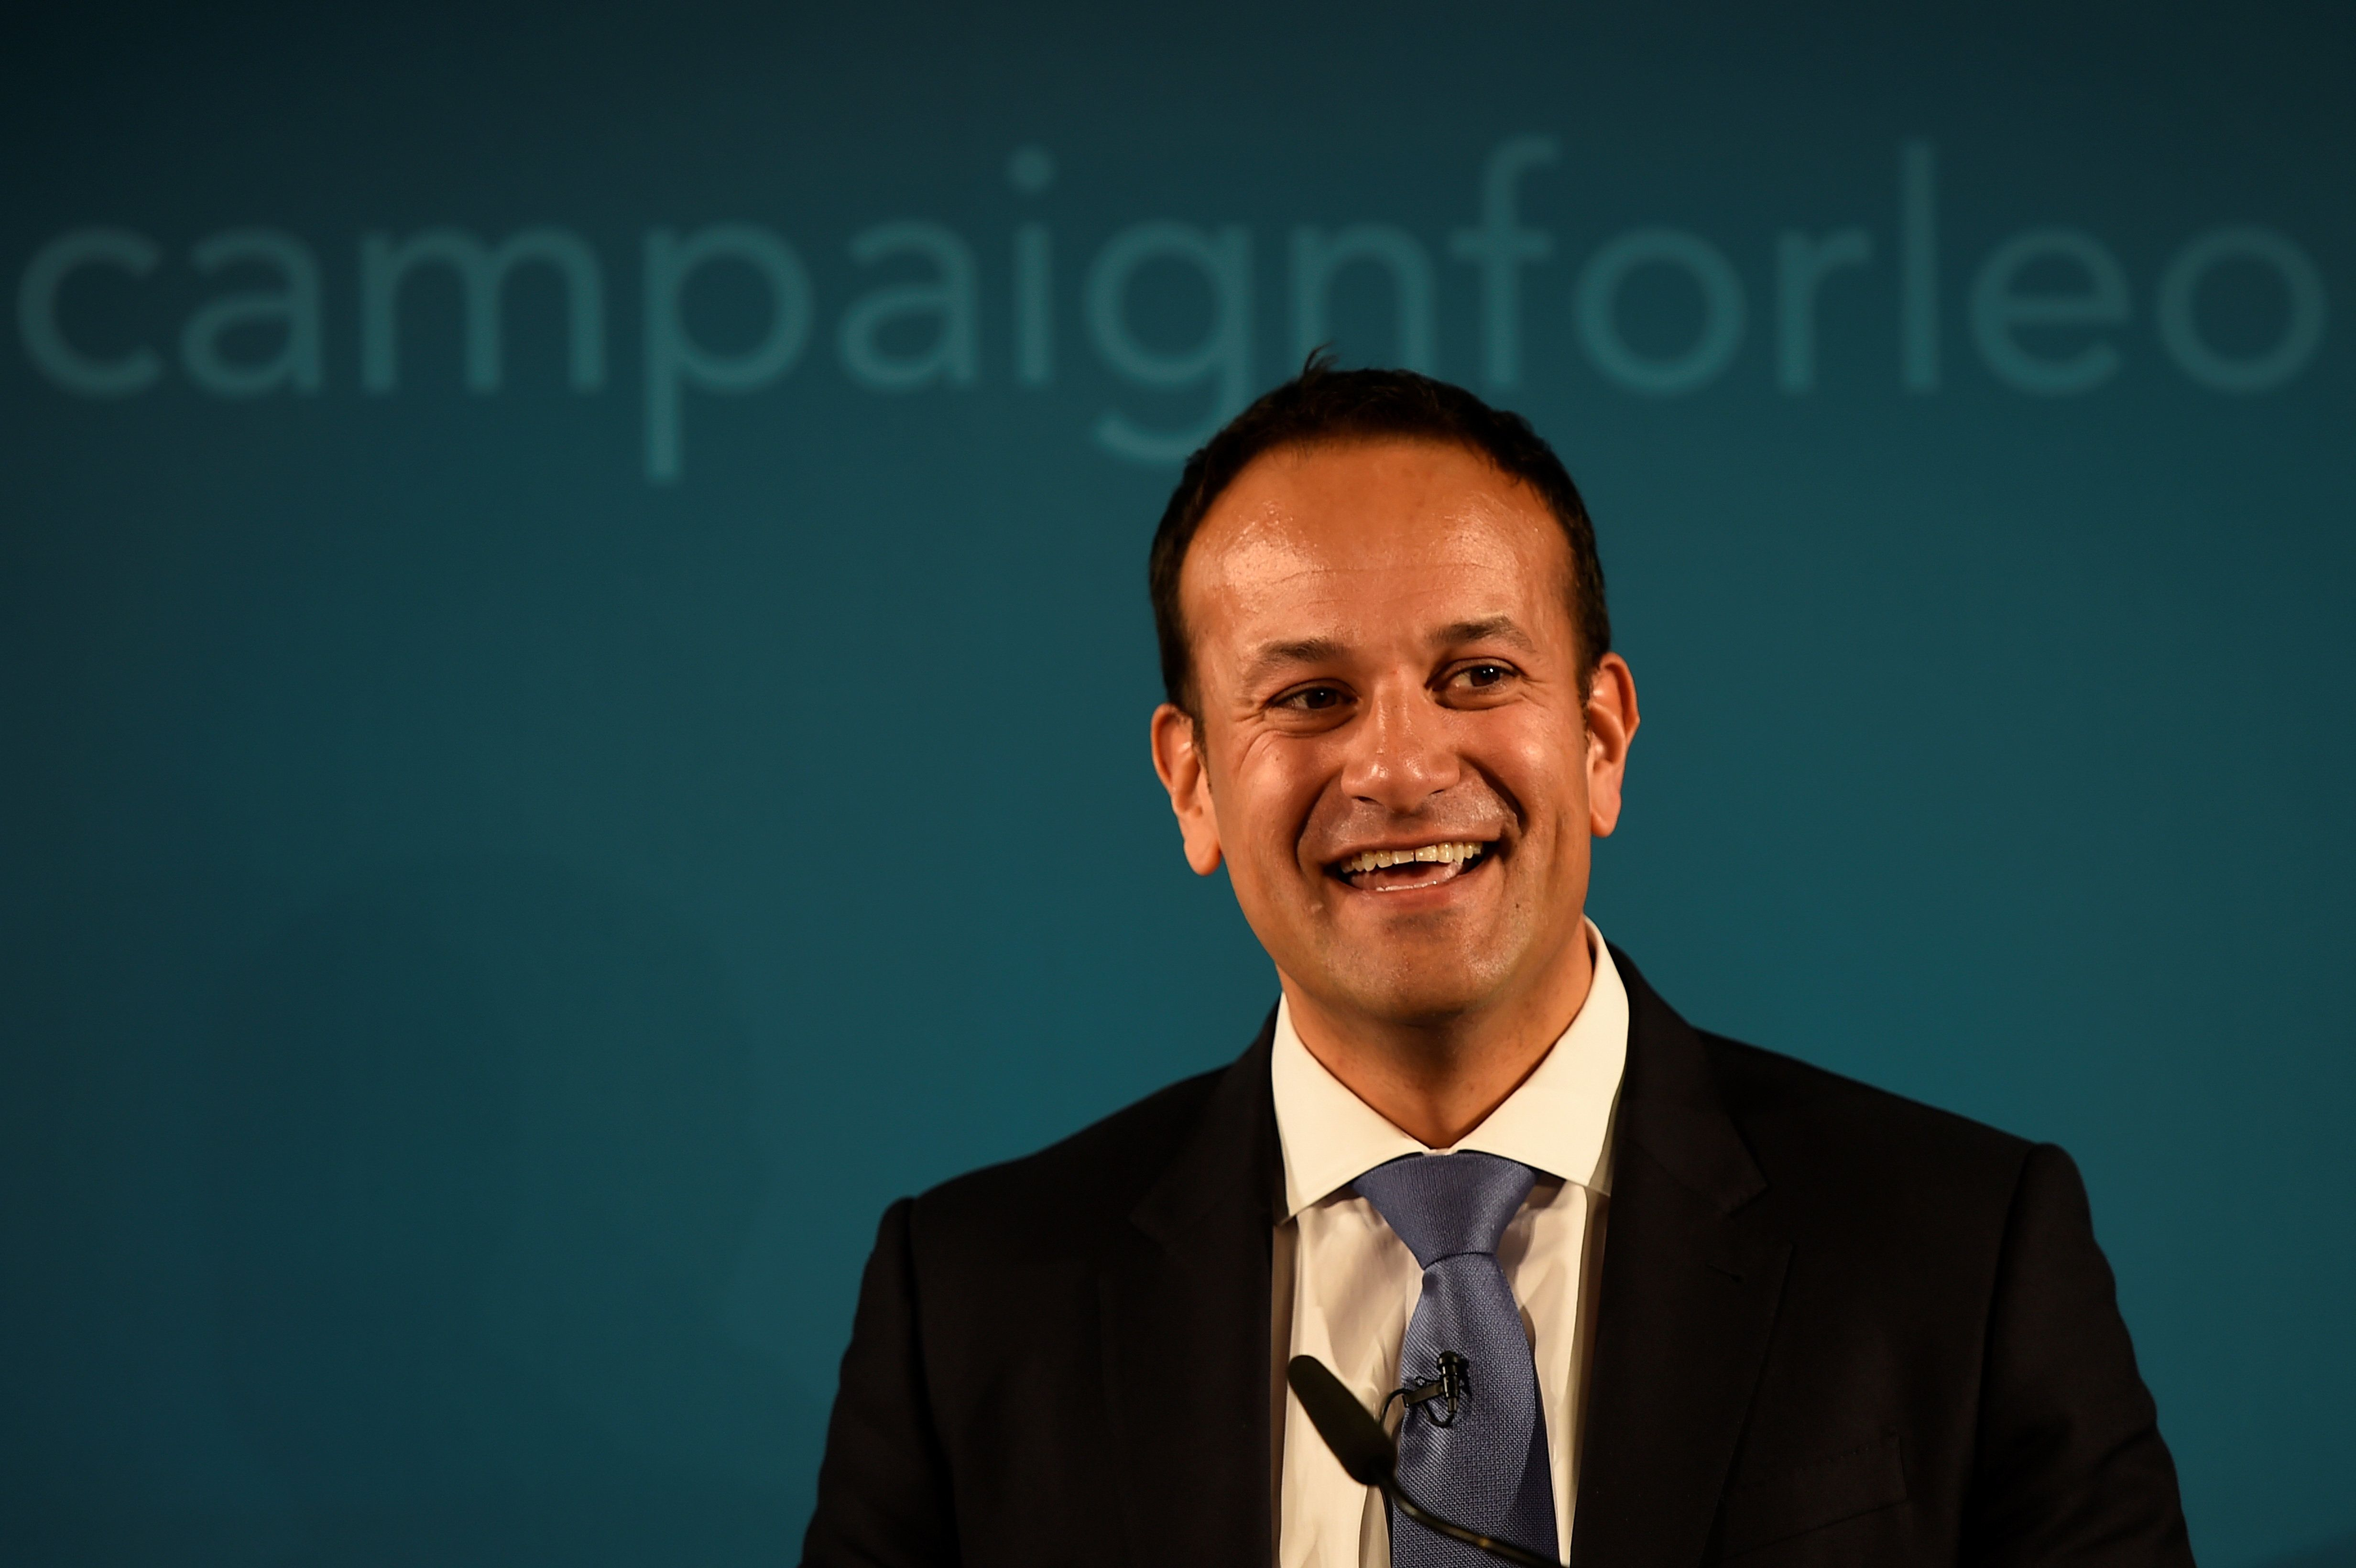 Ireland's Minister for Social Protection Leo Varadkar launches his campaign bid for Fine Gael party leader in Dublin, Ireland May 20, 2017. REUTERS/Clodagh Kilcoyne